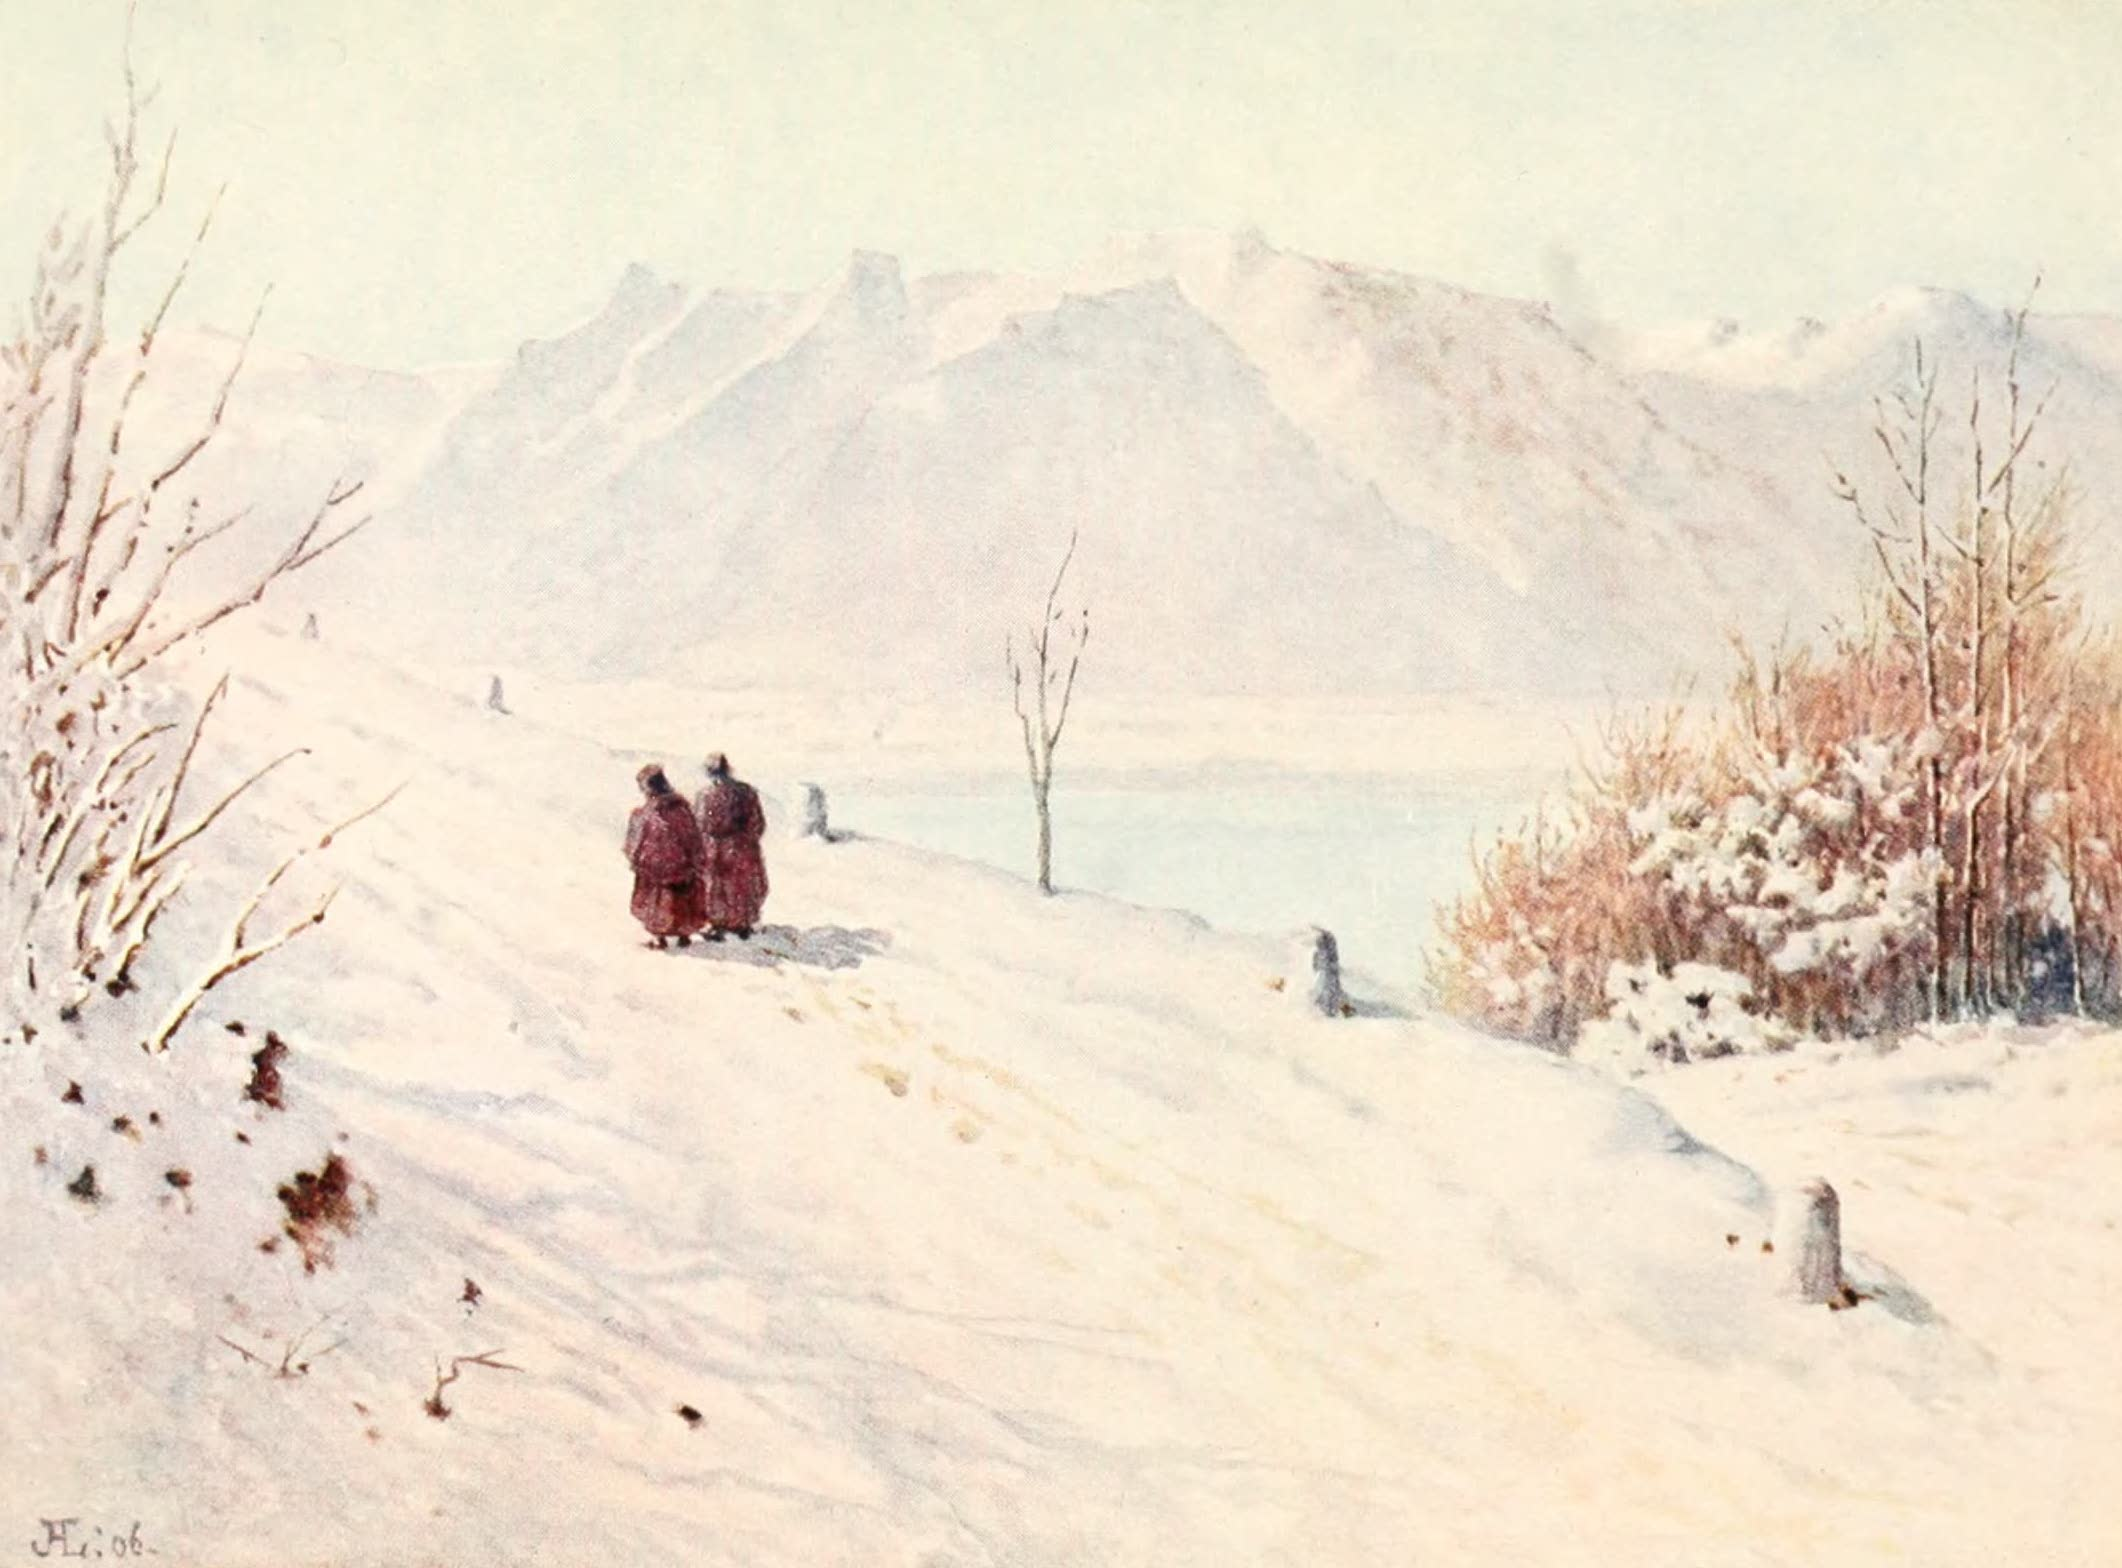 Montreux, Painted and Described - The Savoy Alps (Winter) from the Road to Caux (1908)